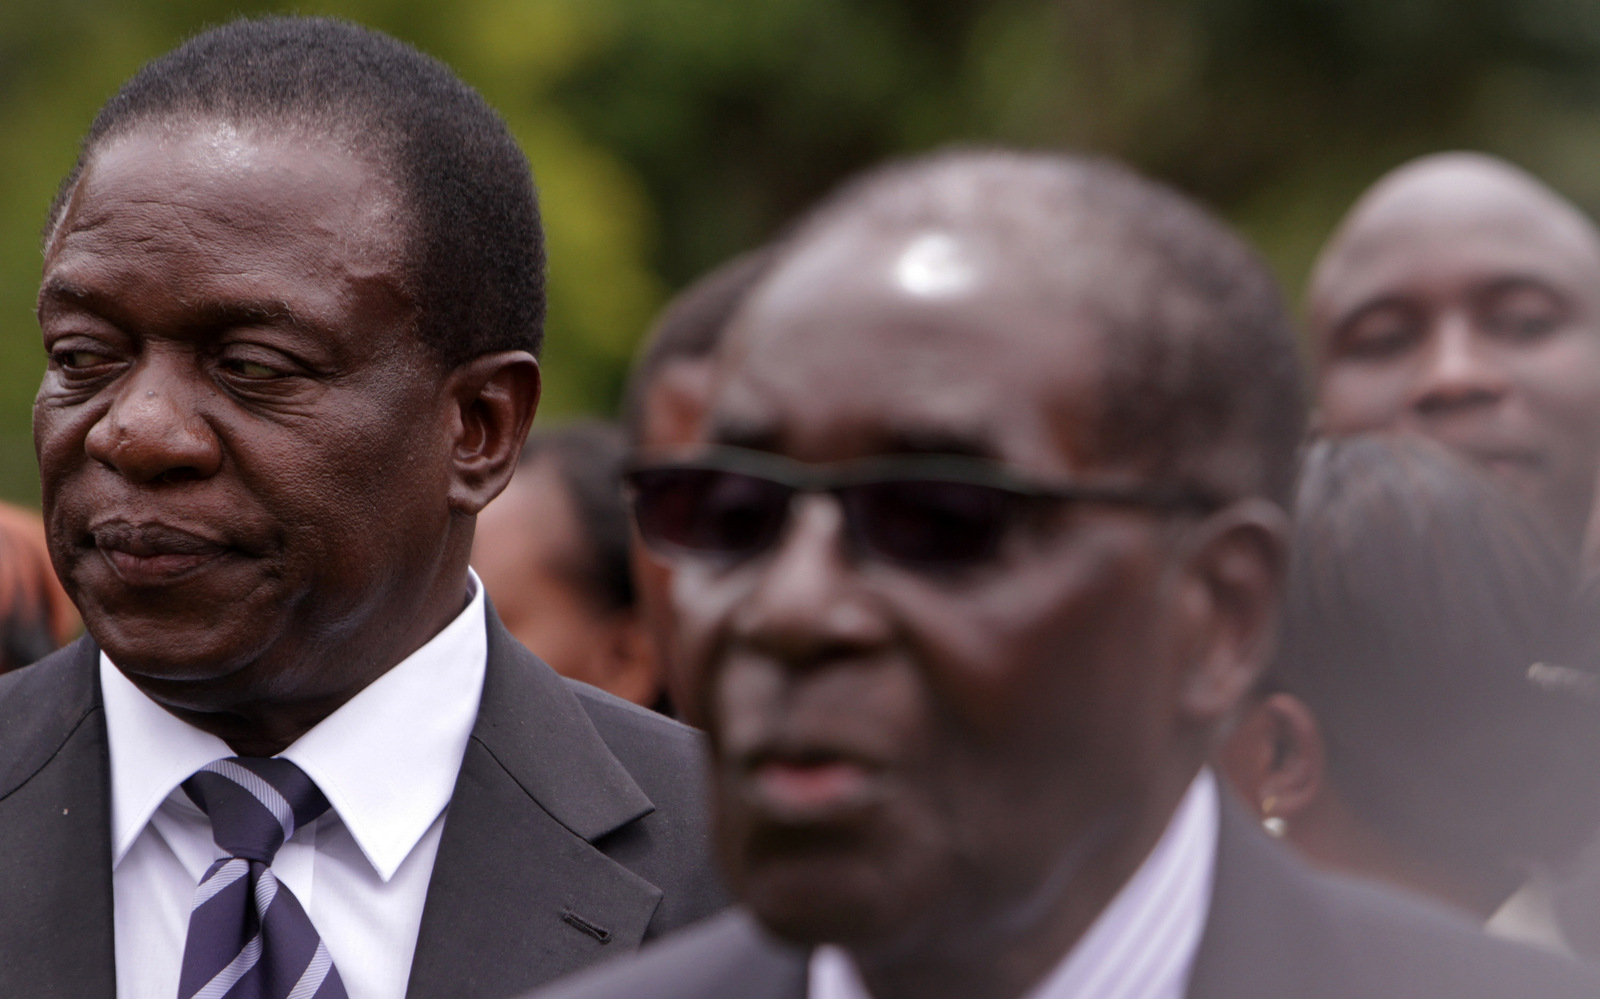 Mnangagwa told to stop harassing Mugabe